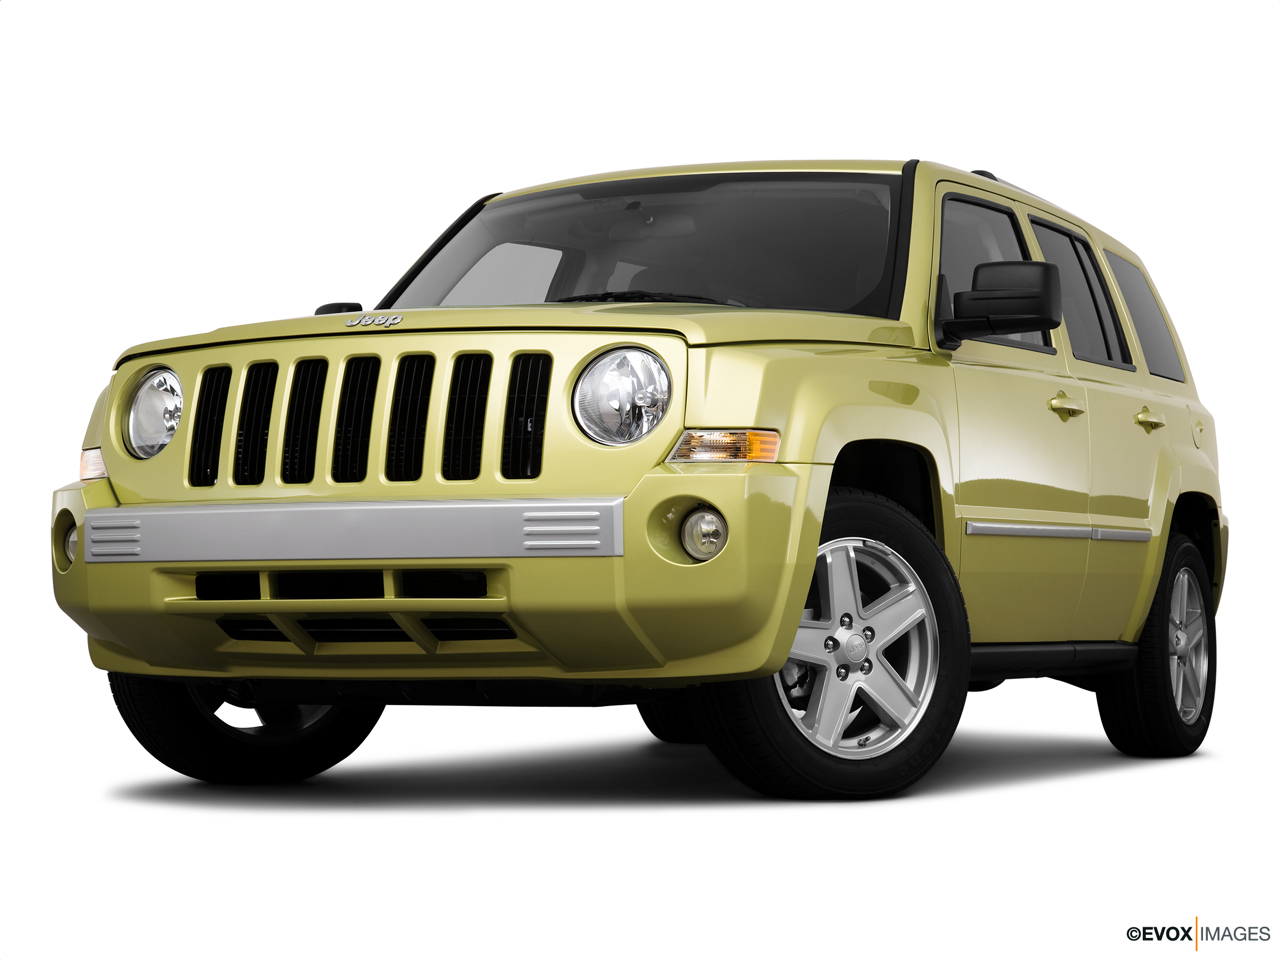 2010 Jeep Patriot Limited Front angle view, low wide perspective.